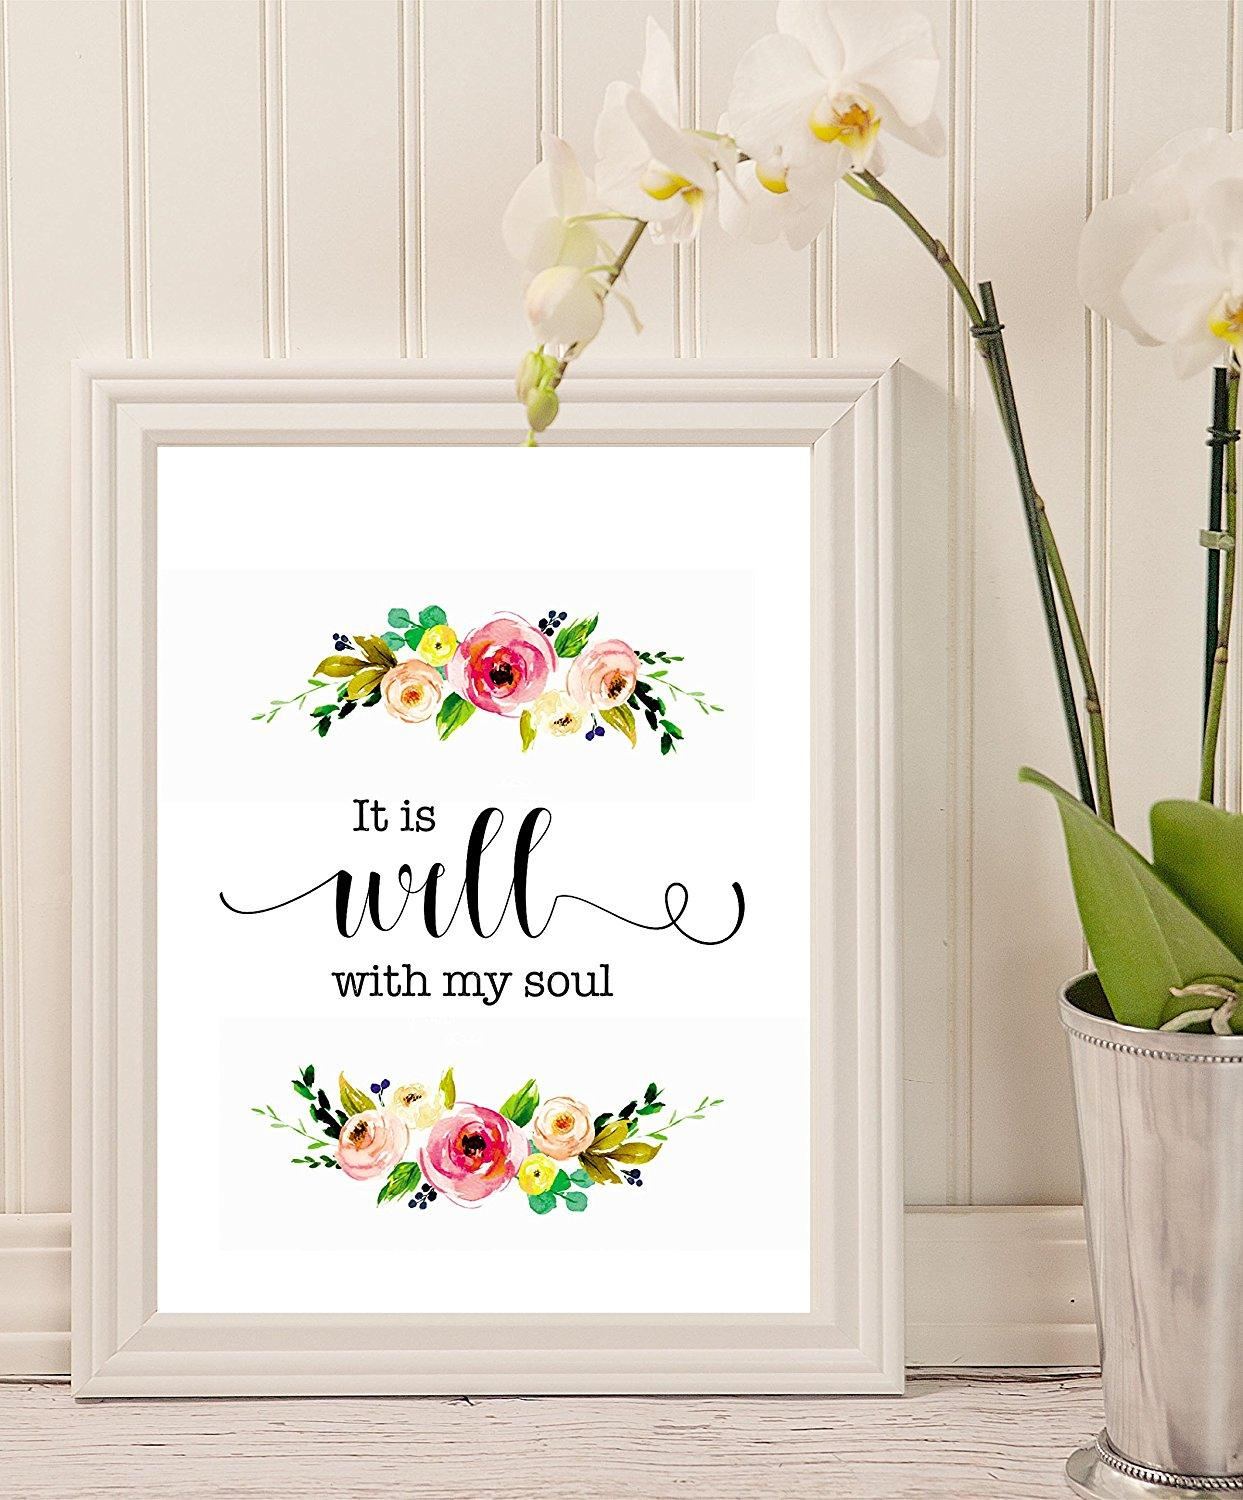 picture relating to It is Well With My Soul Printable identified as It is effectively with my soul - Printable estimate, Christian Wall Print - wall artwork decor - wedding day artwork - Scripture Print - floral prices - Household decor